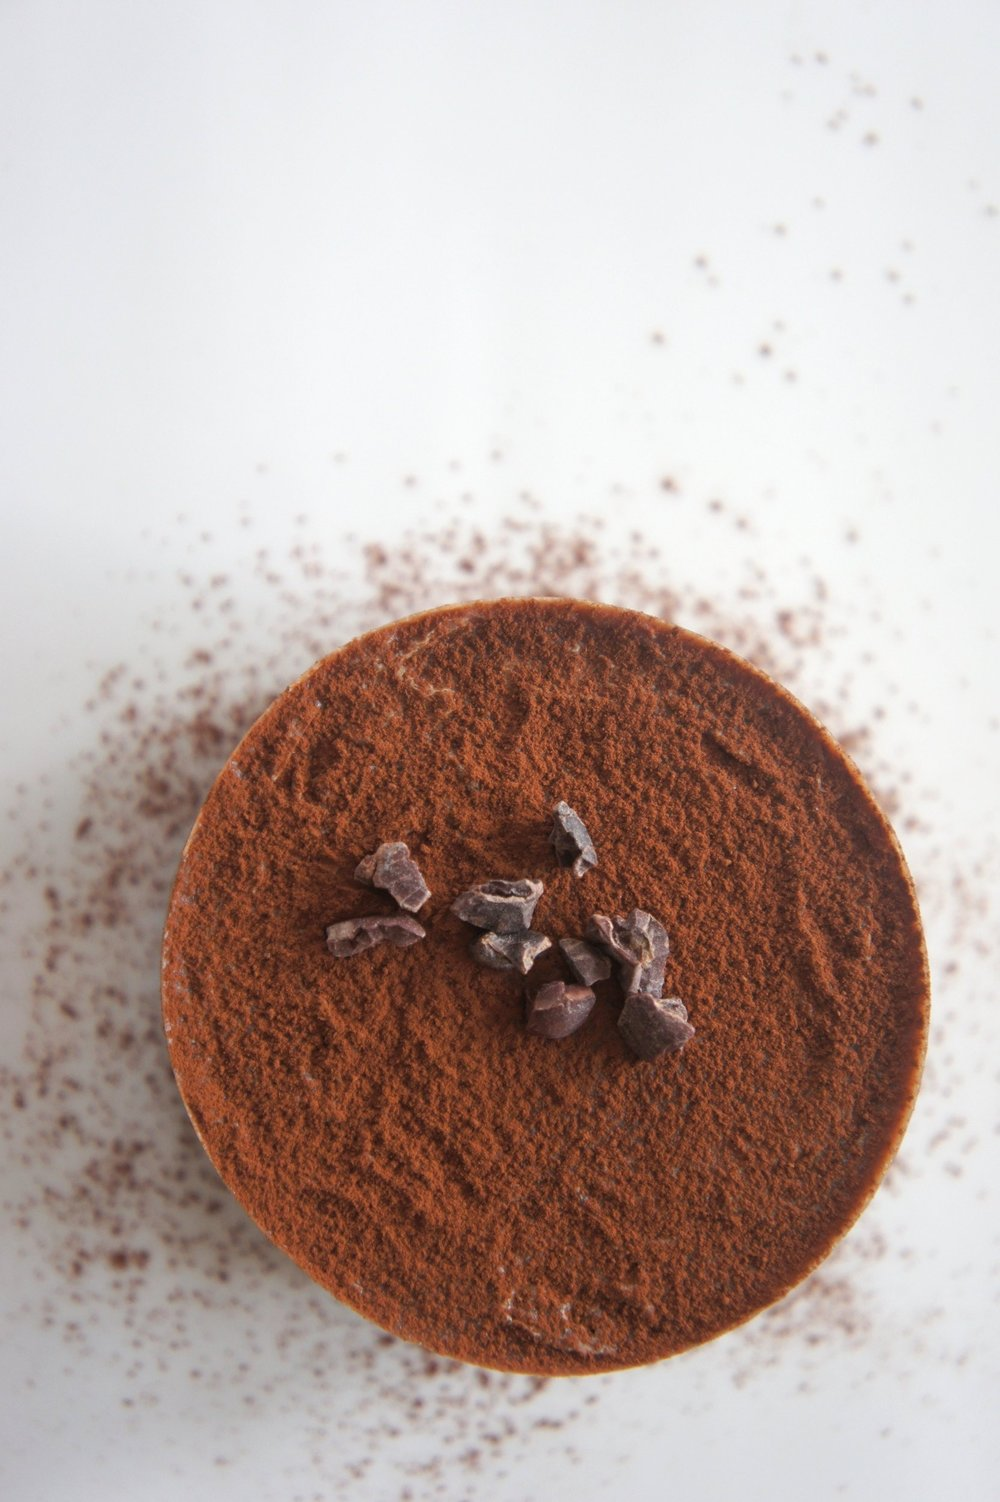 Anti Aging Chocolate Mask  - 1/2 cup of cocoa powder3 tablespoons of oats4 tablespoons of cream1/4 cup of honeyWho doesn't love chocolate? While you're having some